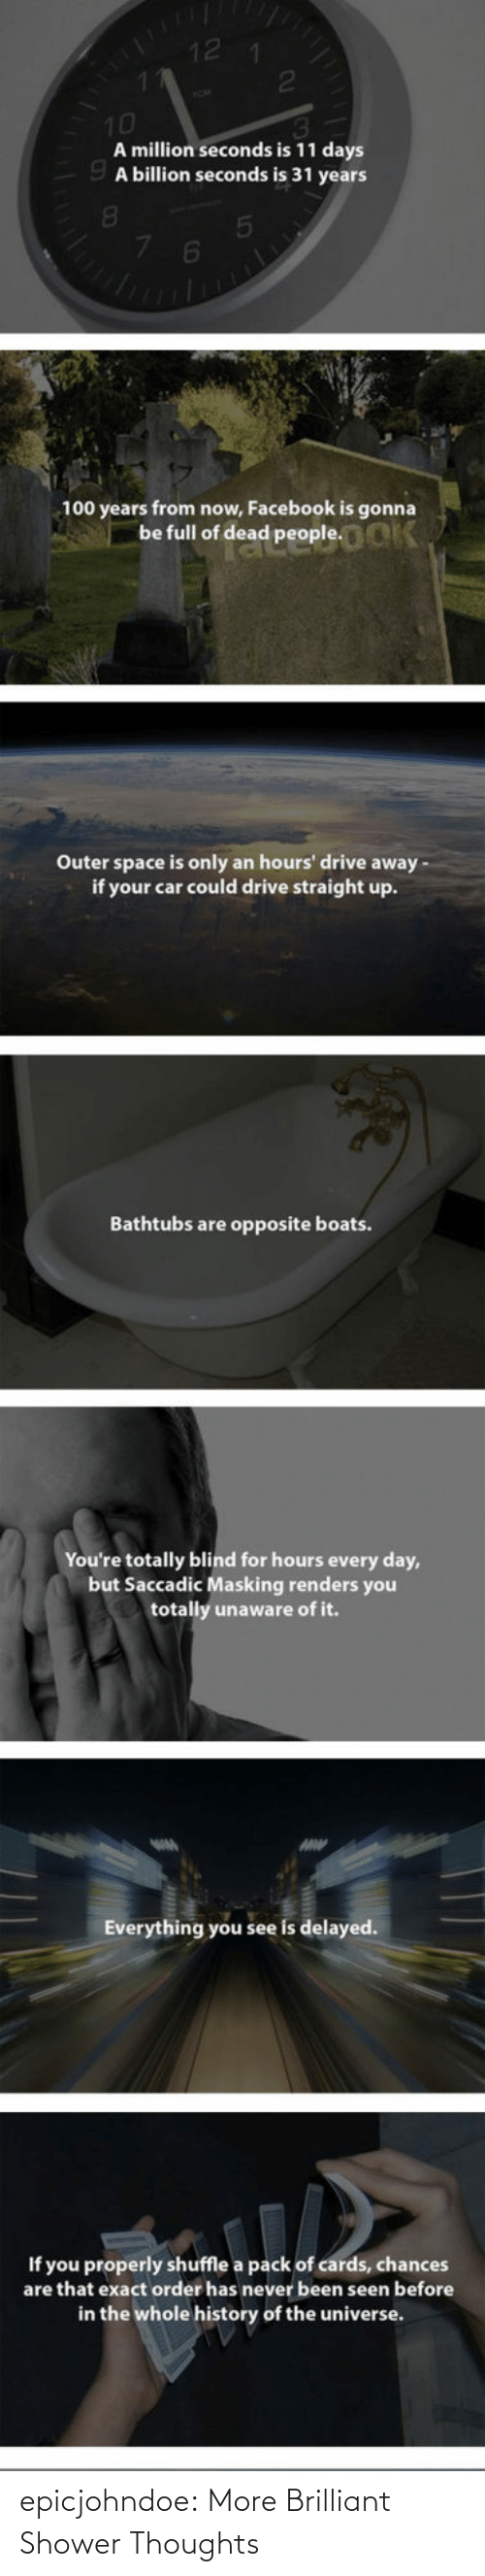 Shower thoughts: epicjohndoe:  More Brilliant Shower Thoughts